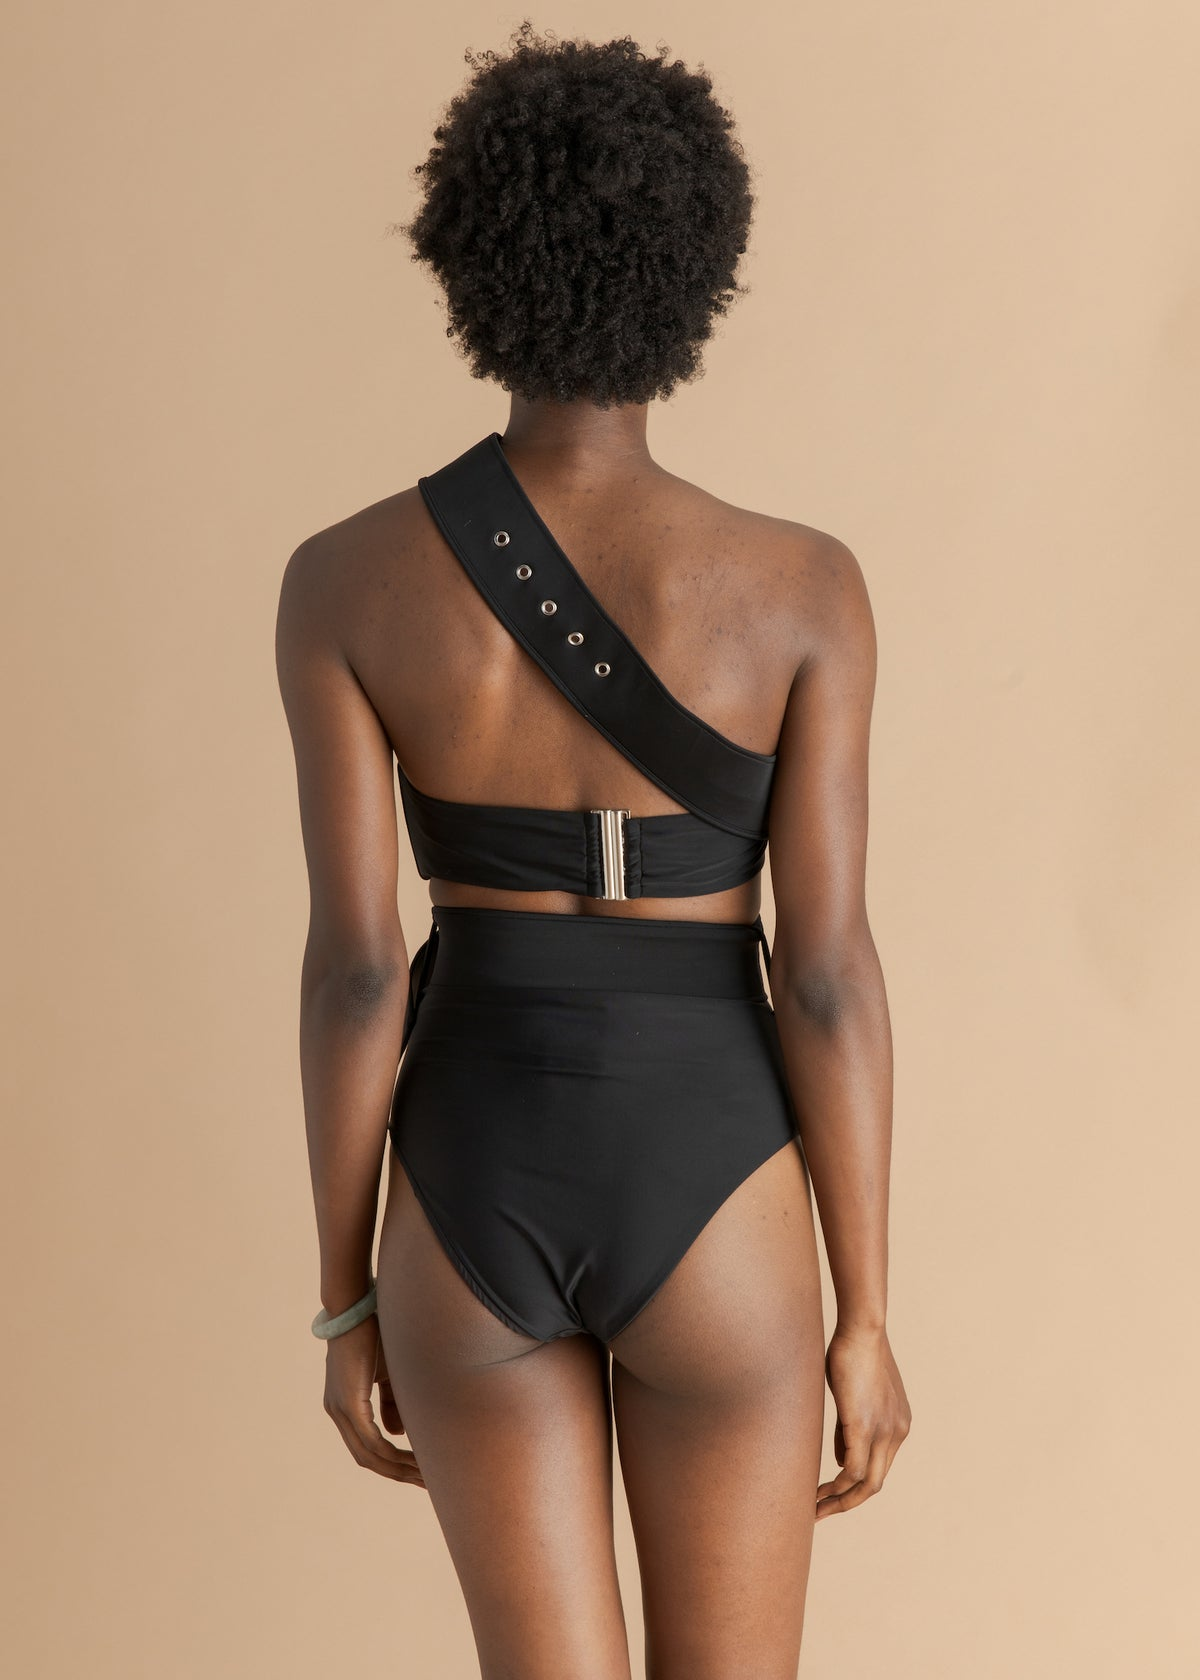 Black one shoulder Andrea Iyamah swimsuit